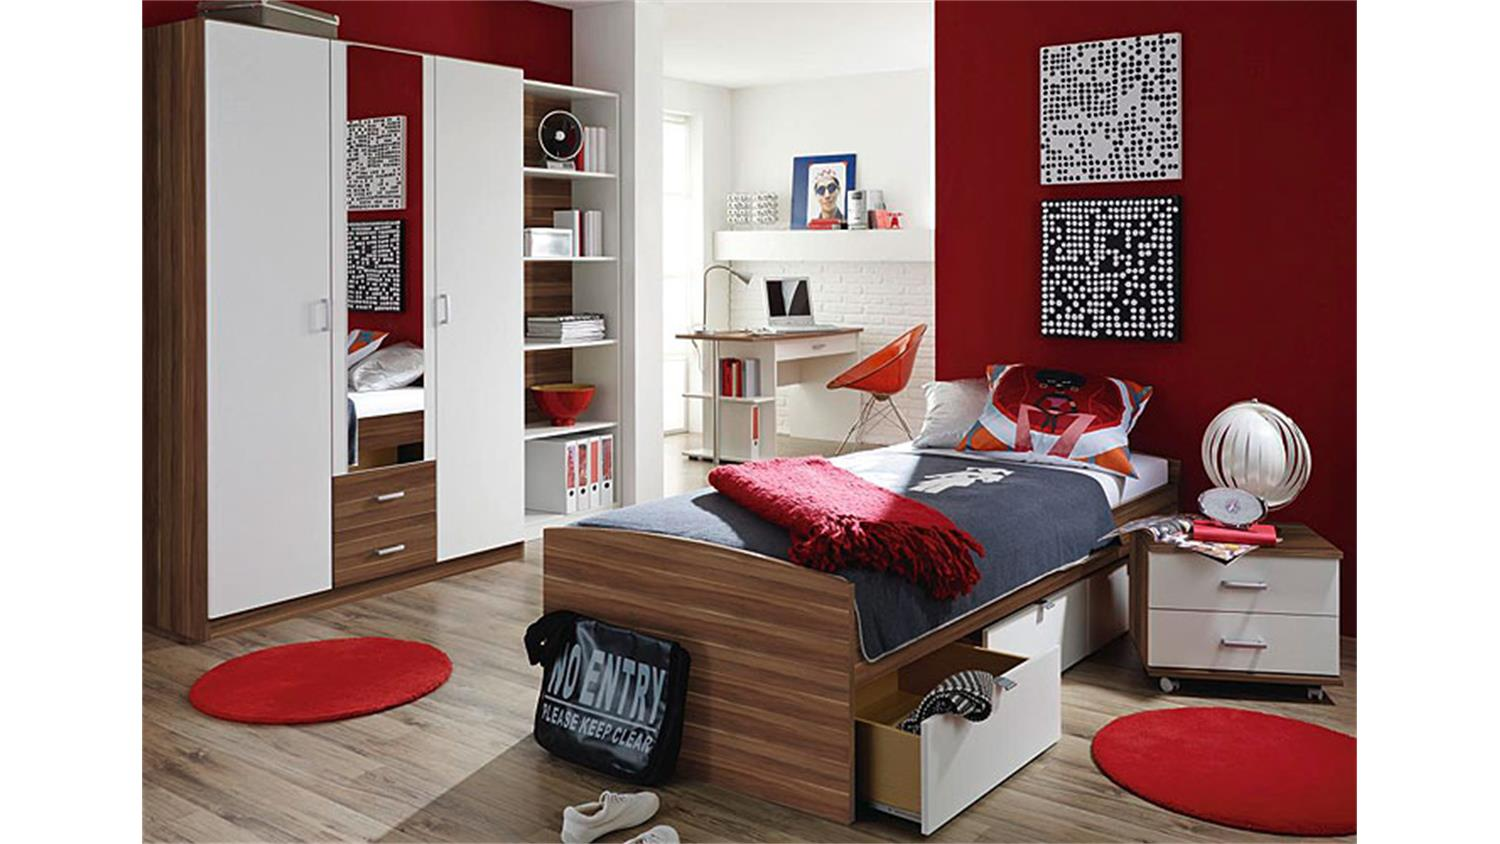 kinderbett mit schrank best komplettes bett schrank kommode lilith with kinderbett mit schrank. Black Bedroom Furniture Sets. Home Design Ideas